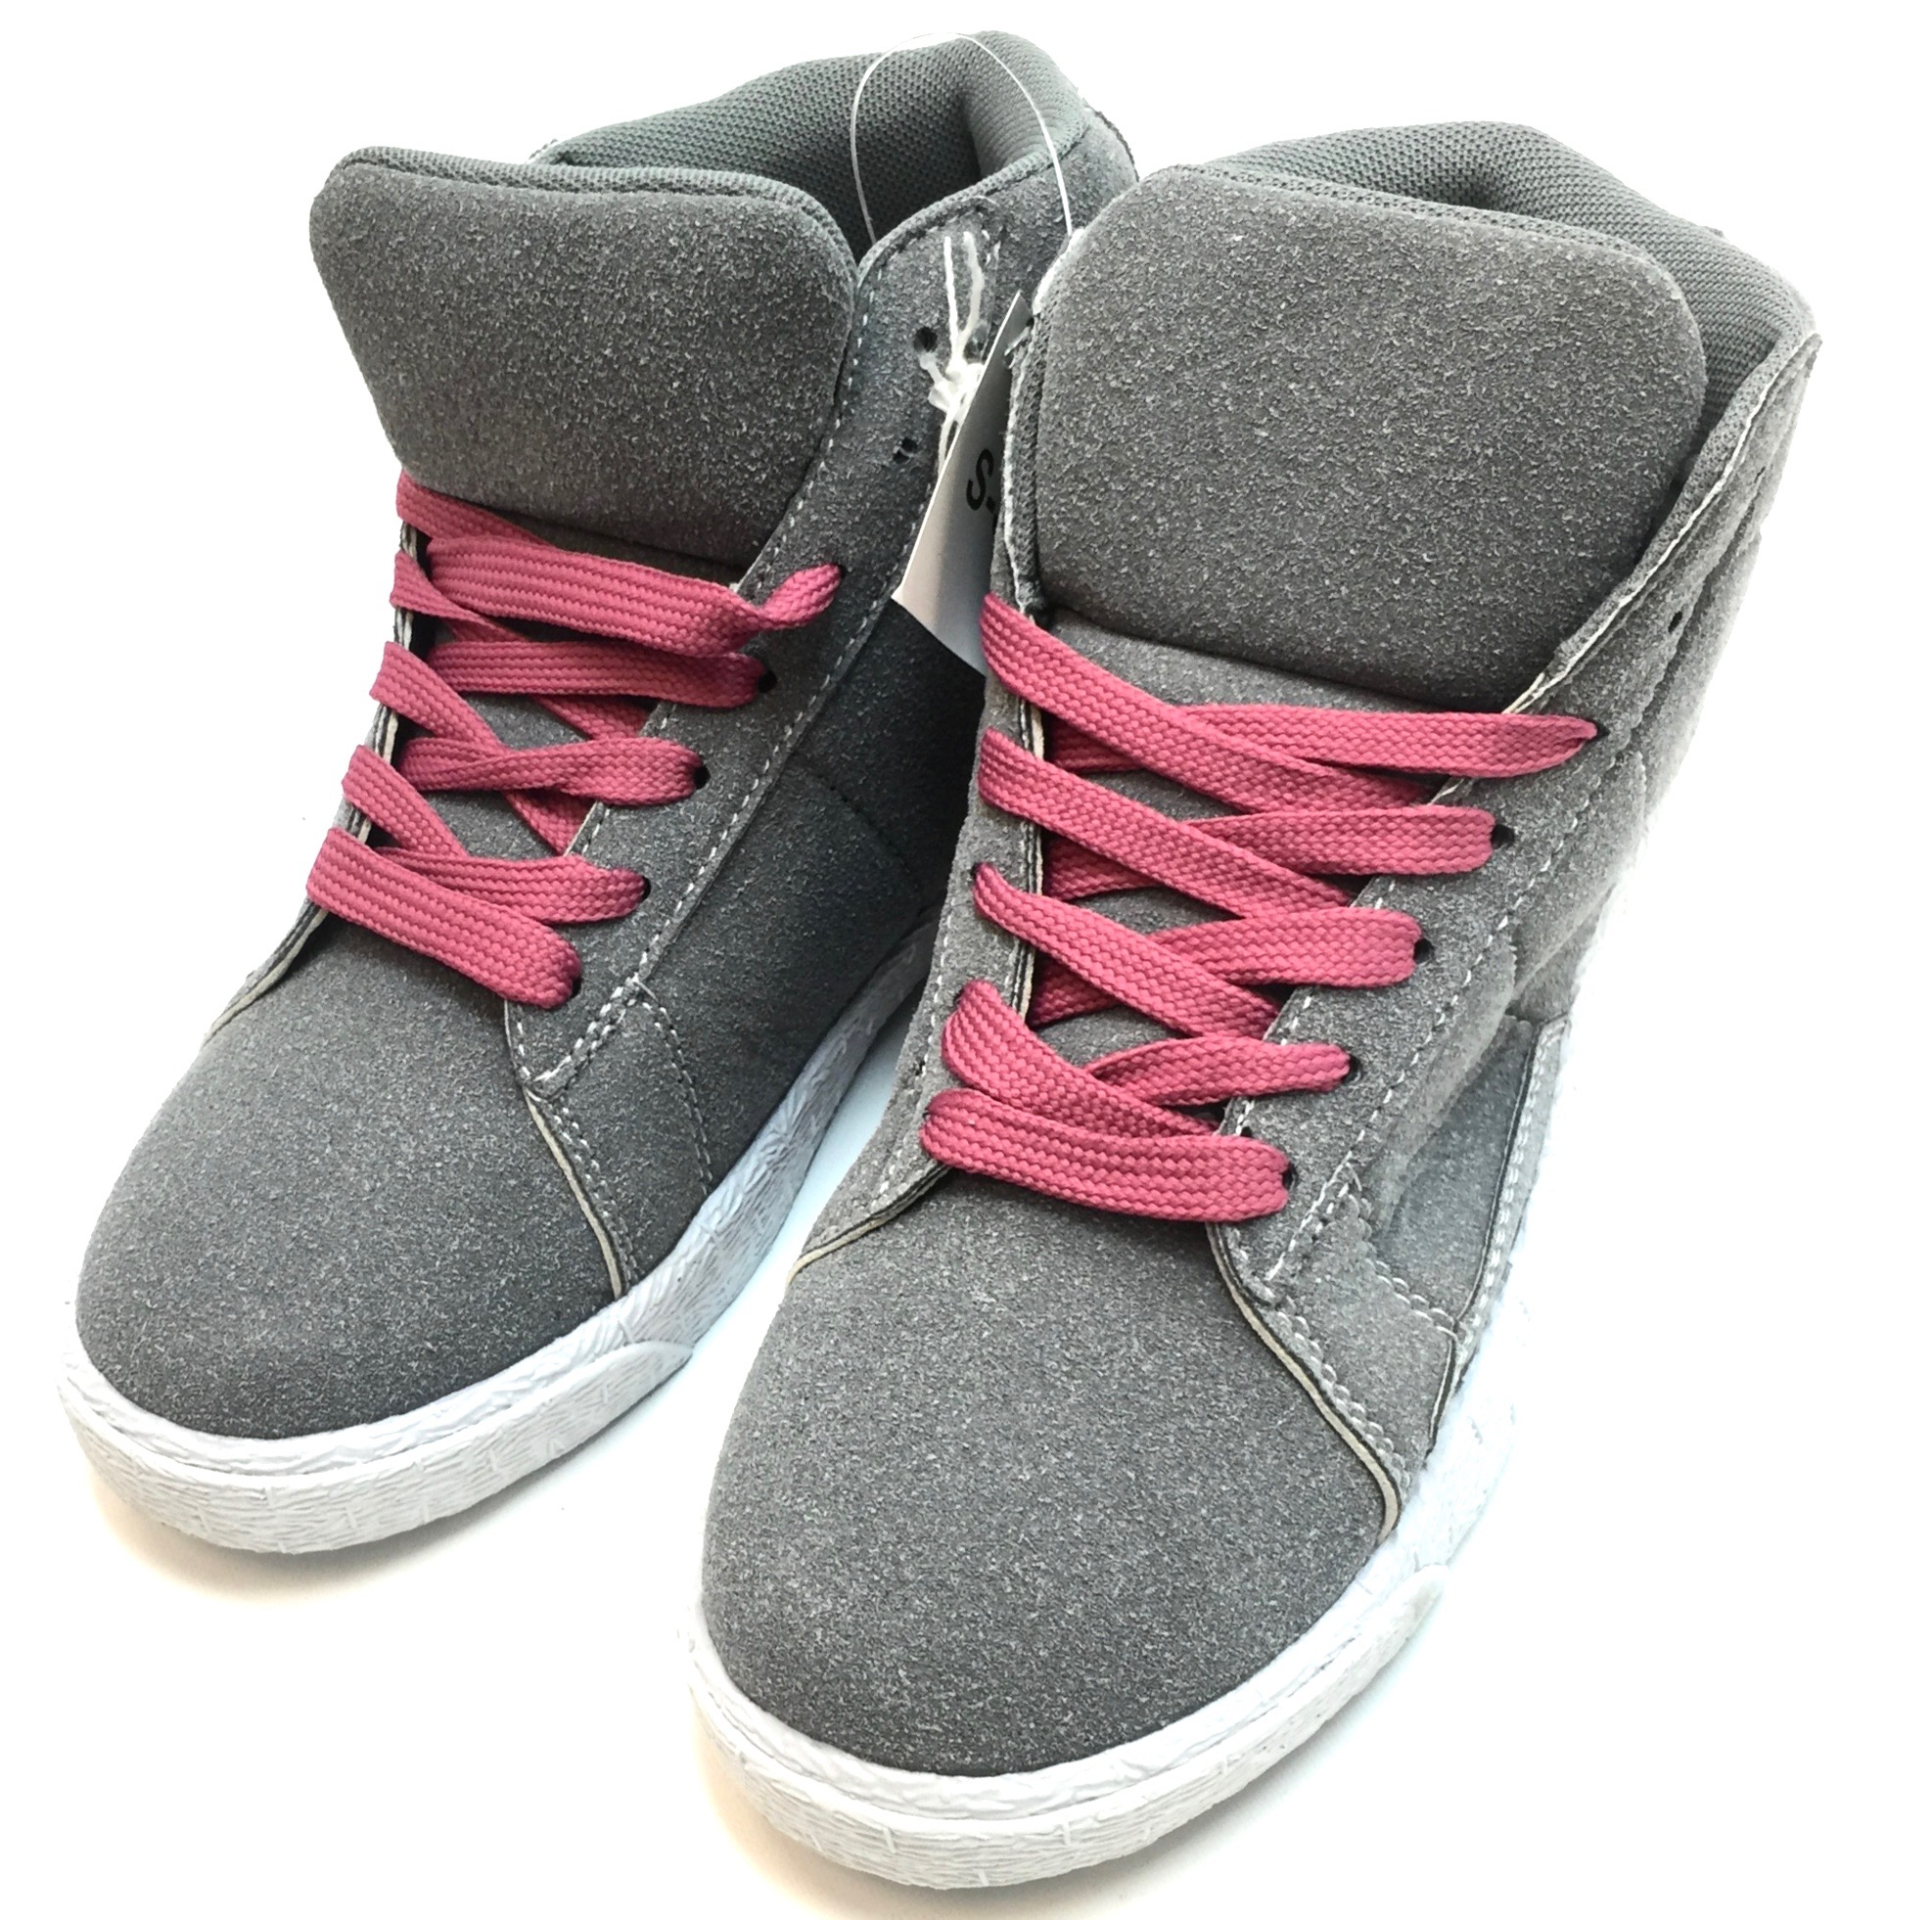 Womens Hightop Sneaker Grey/White